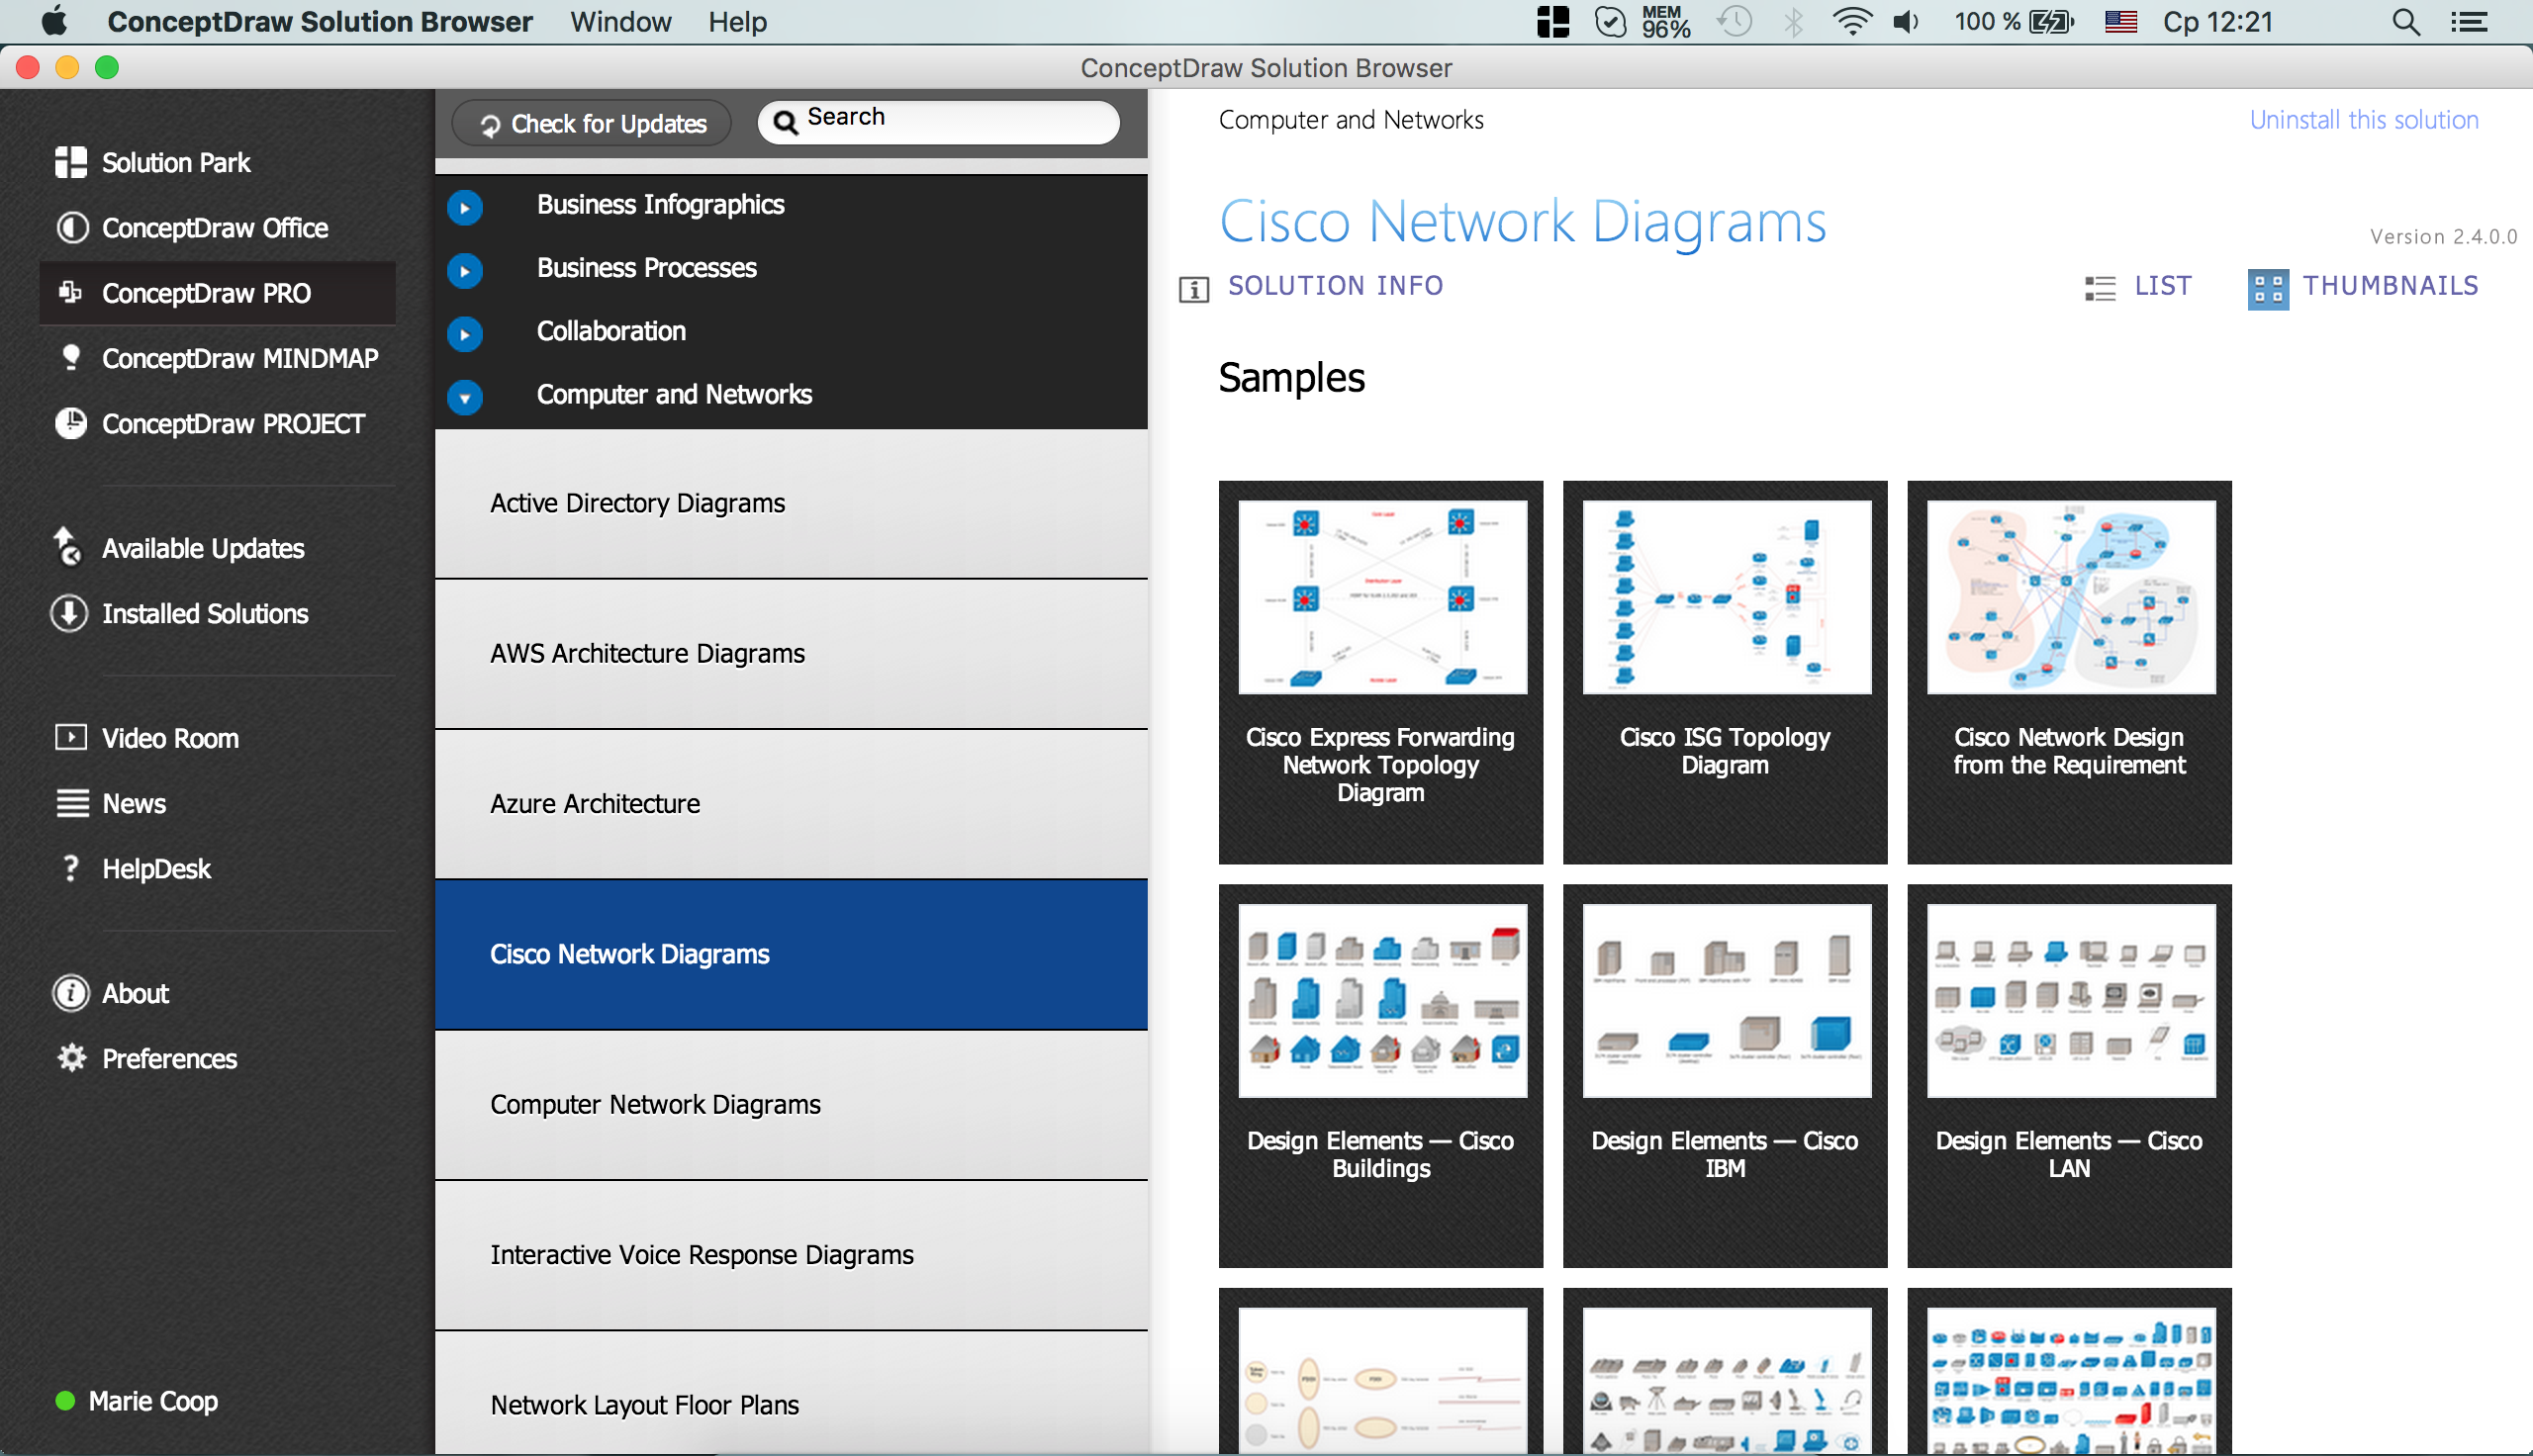 Cisco Ibm Icons Shapes Stencils And Symbols Images Of Intranet Network Diagram Diagrams Solution